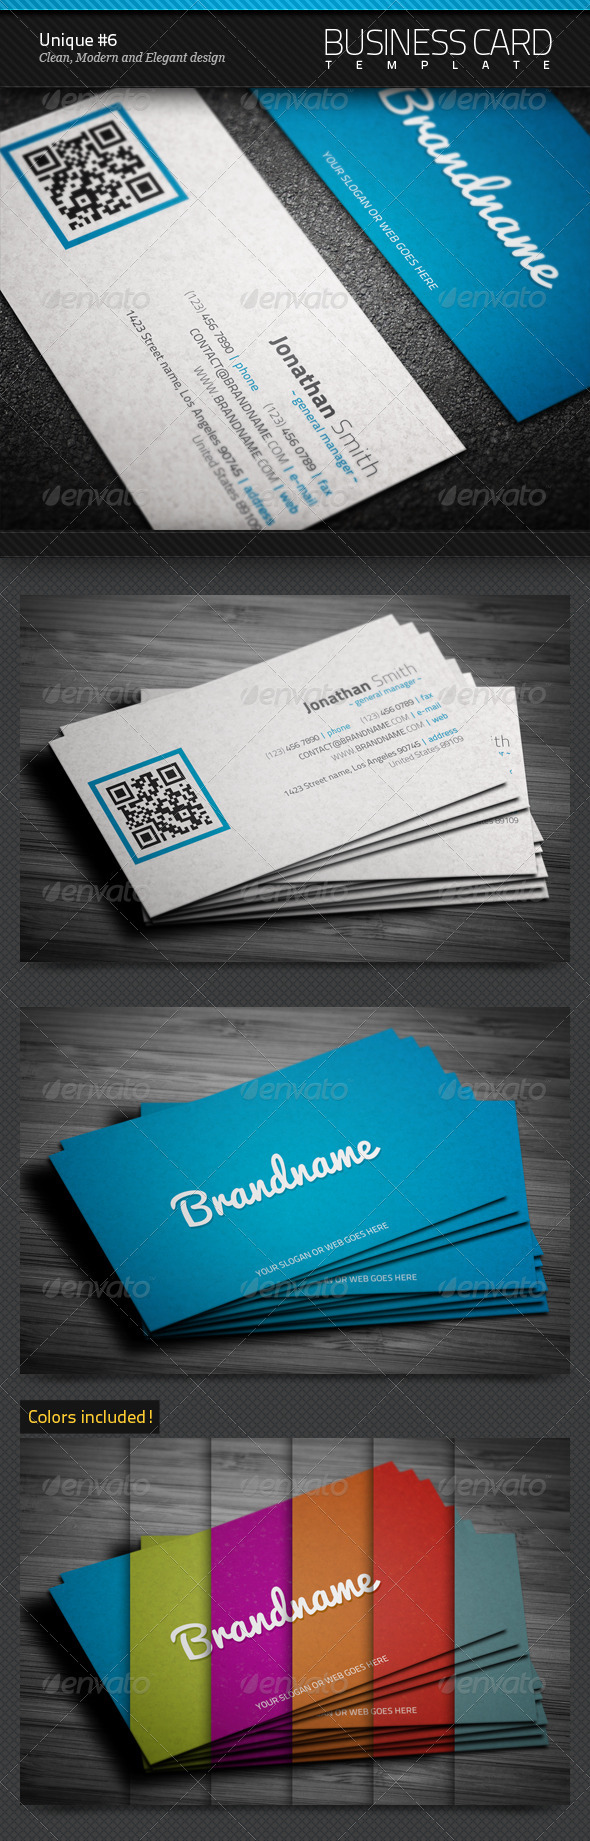 GraphicRiver Unique Business Card #6 3669850